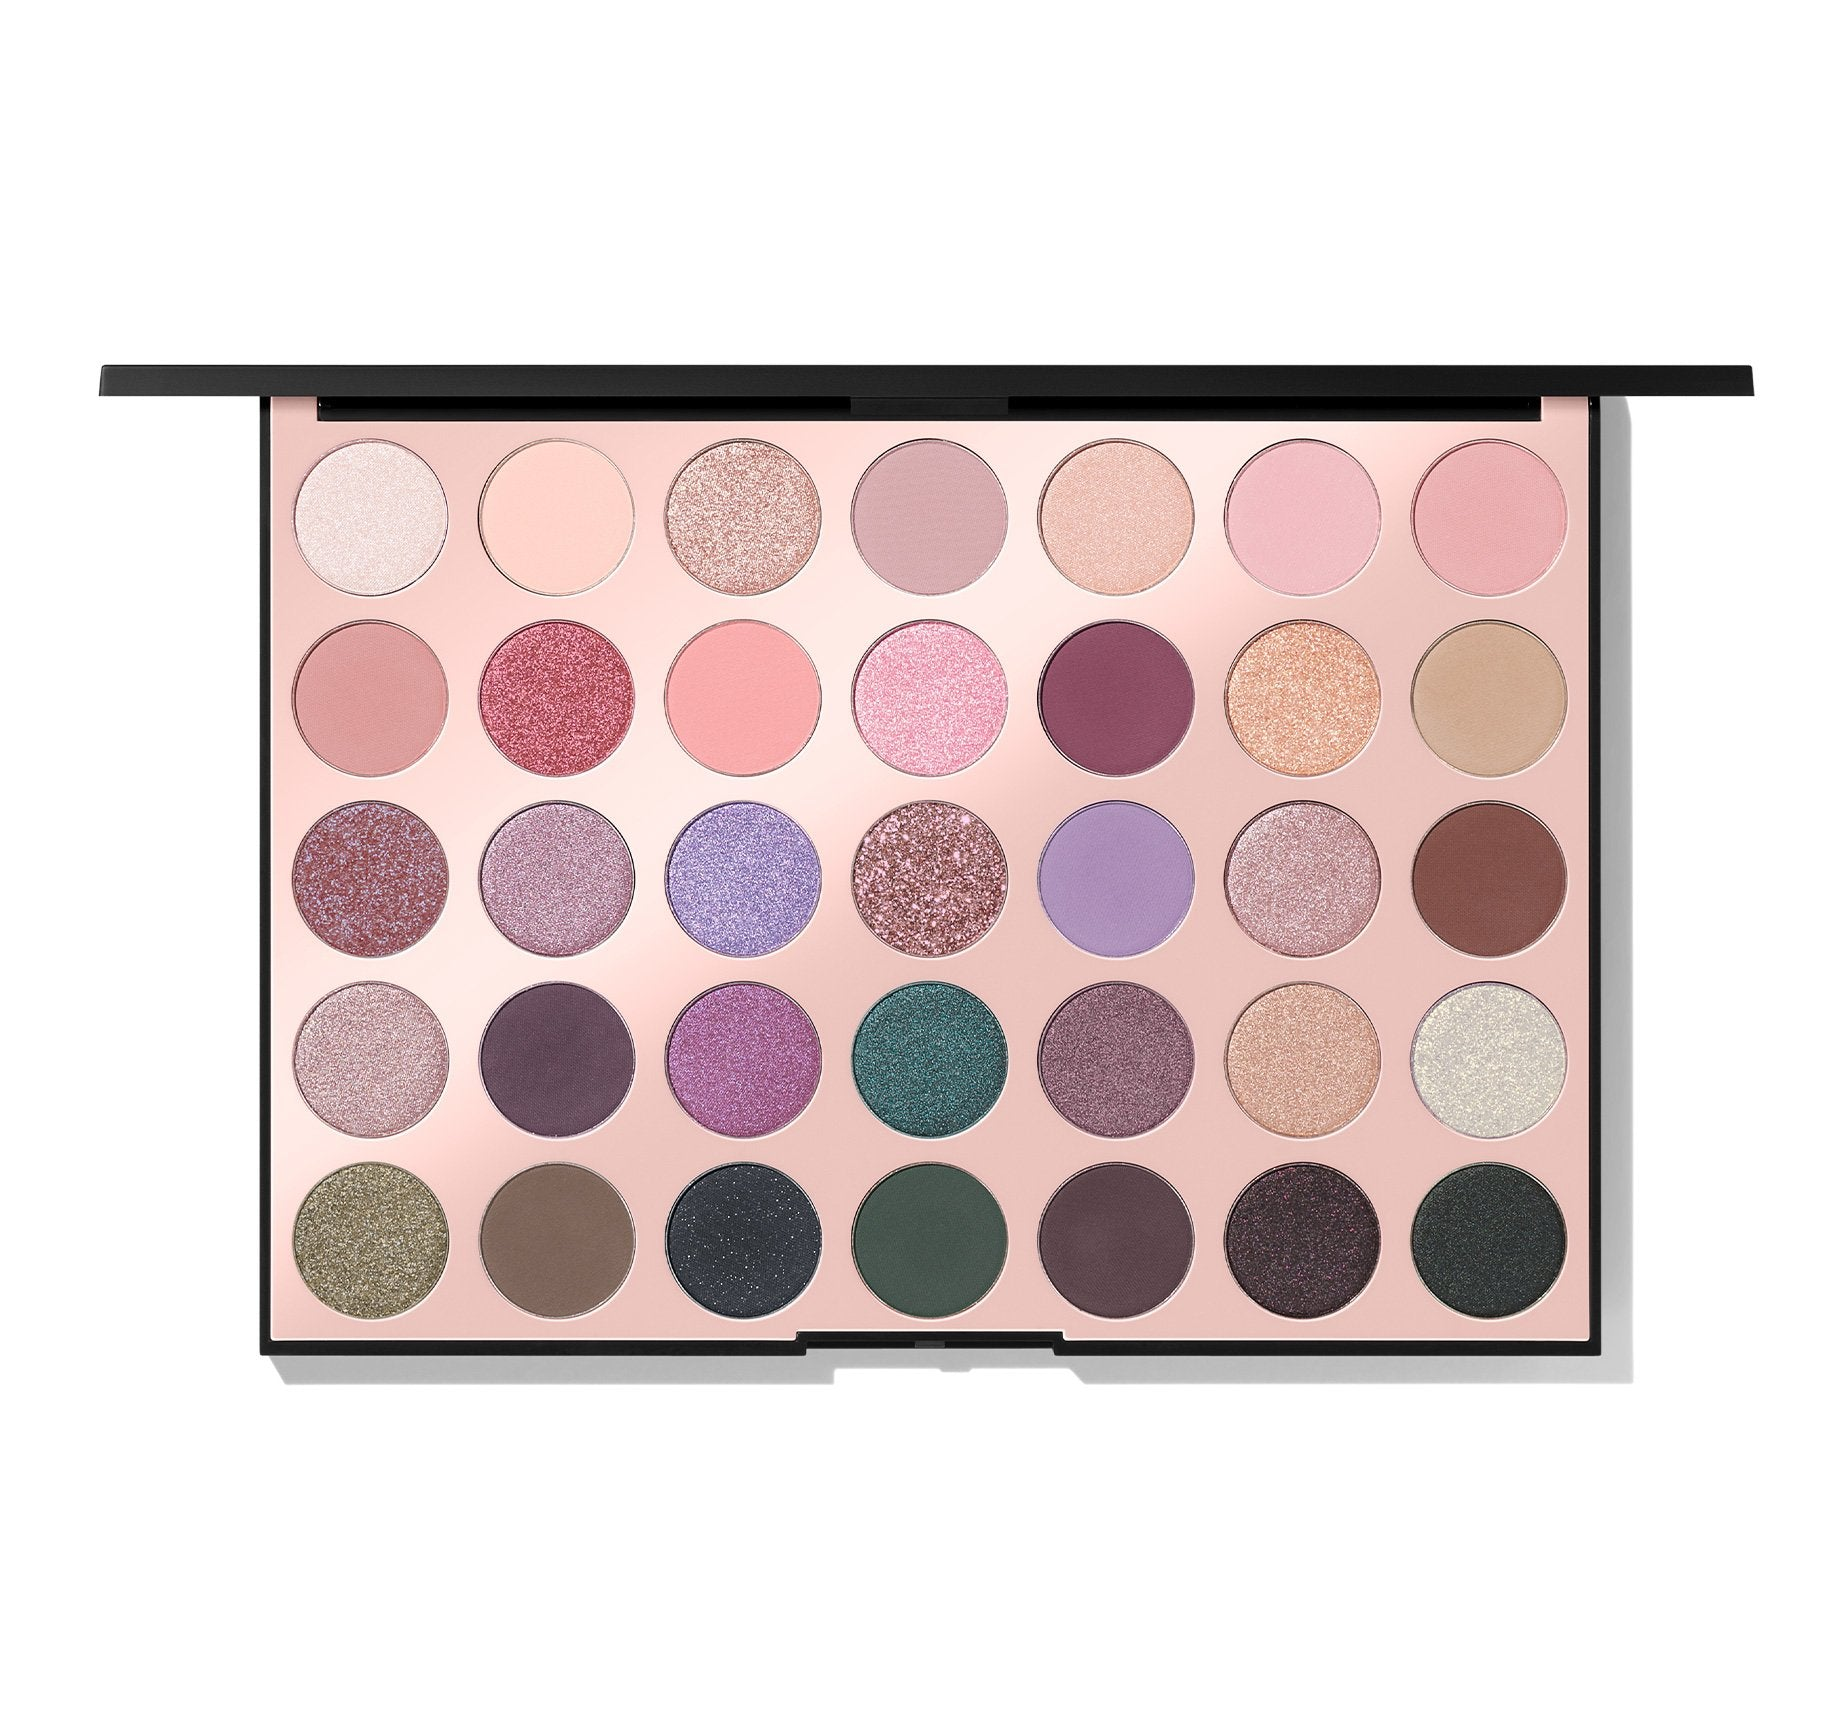 35C EVERYDAY CHIC ARTISTRY PALETTE, view larger image